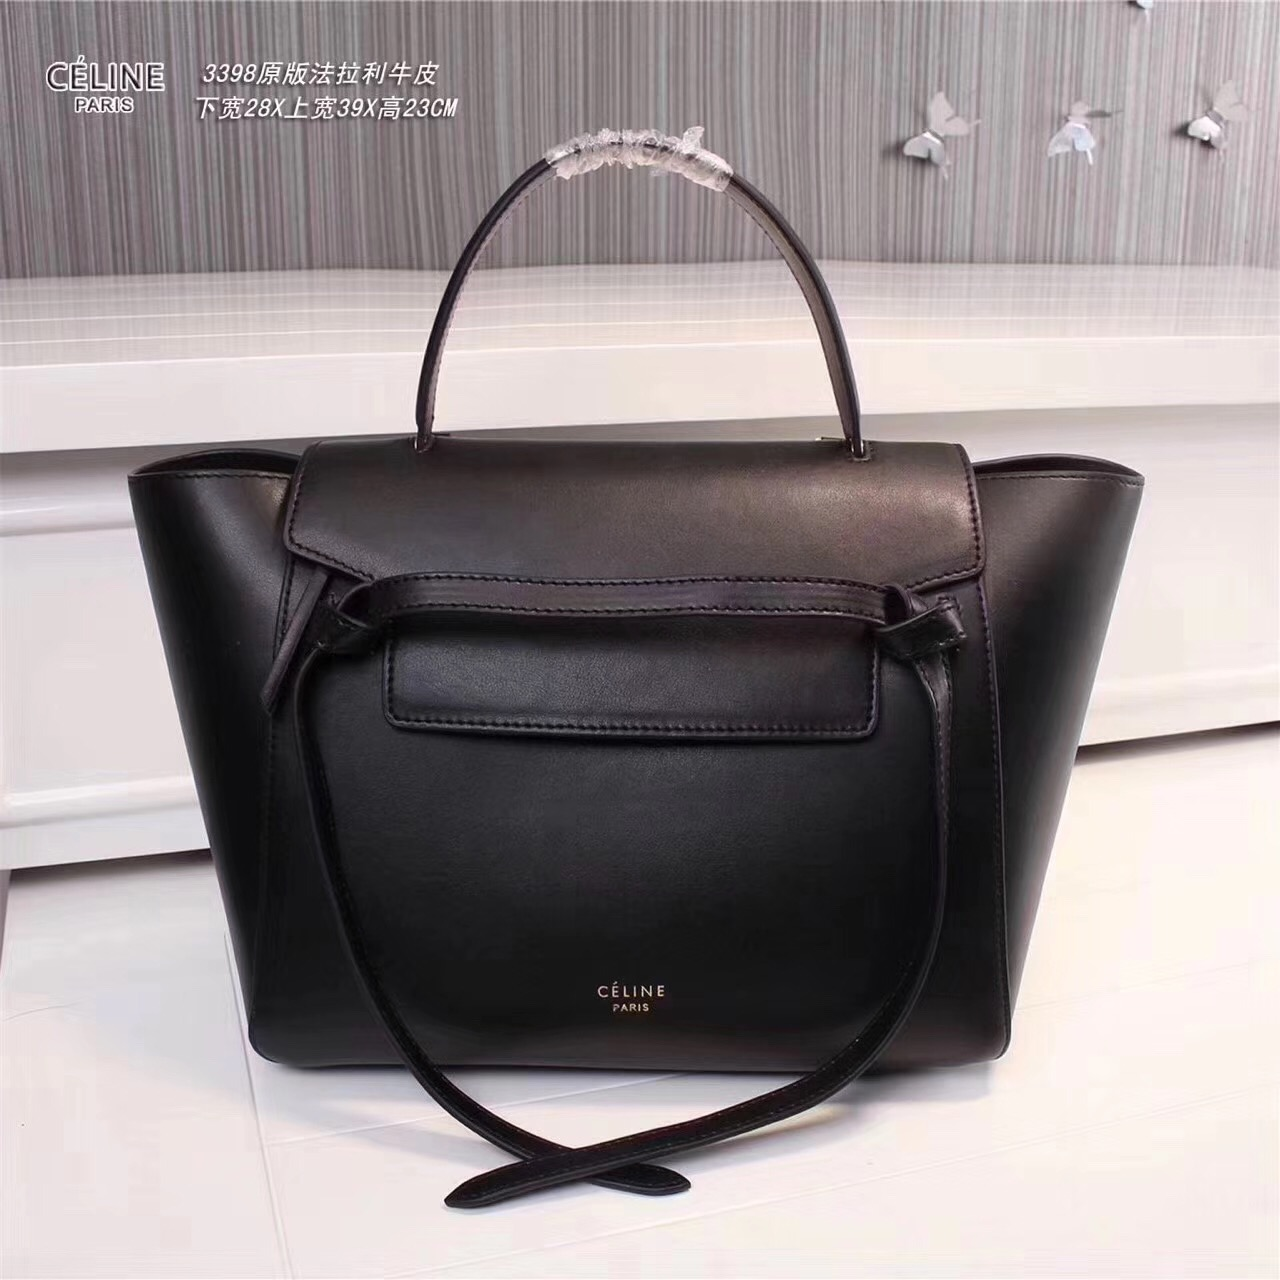 Celine Belt Bag Smooth Leather Tote Handbag Black